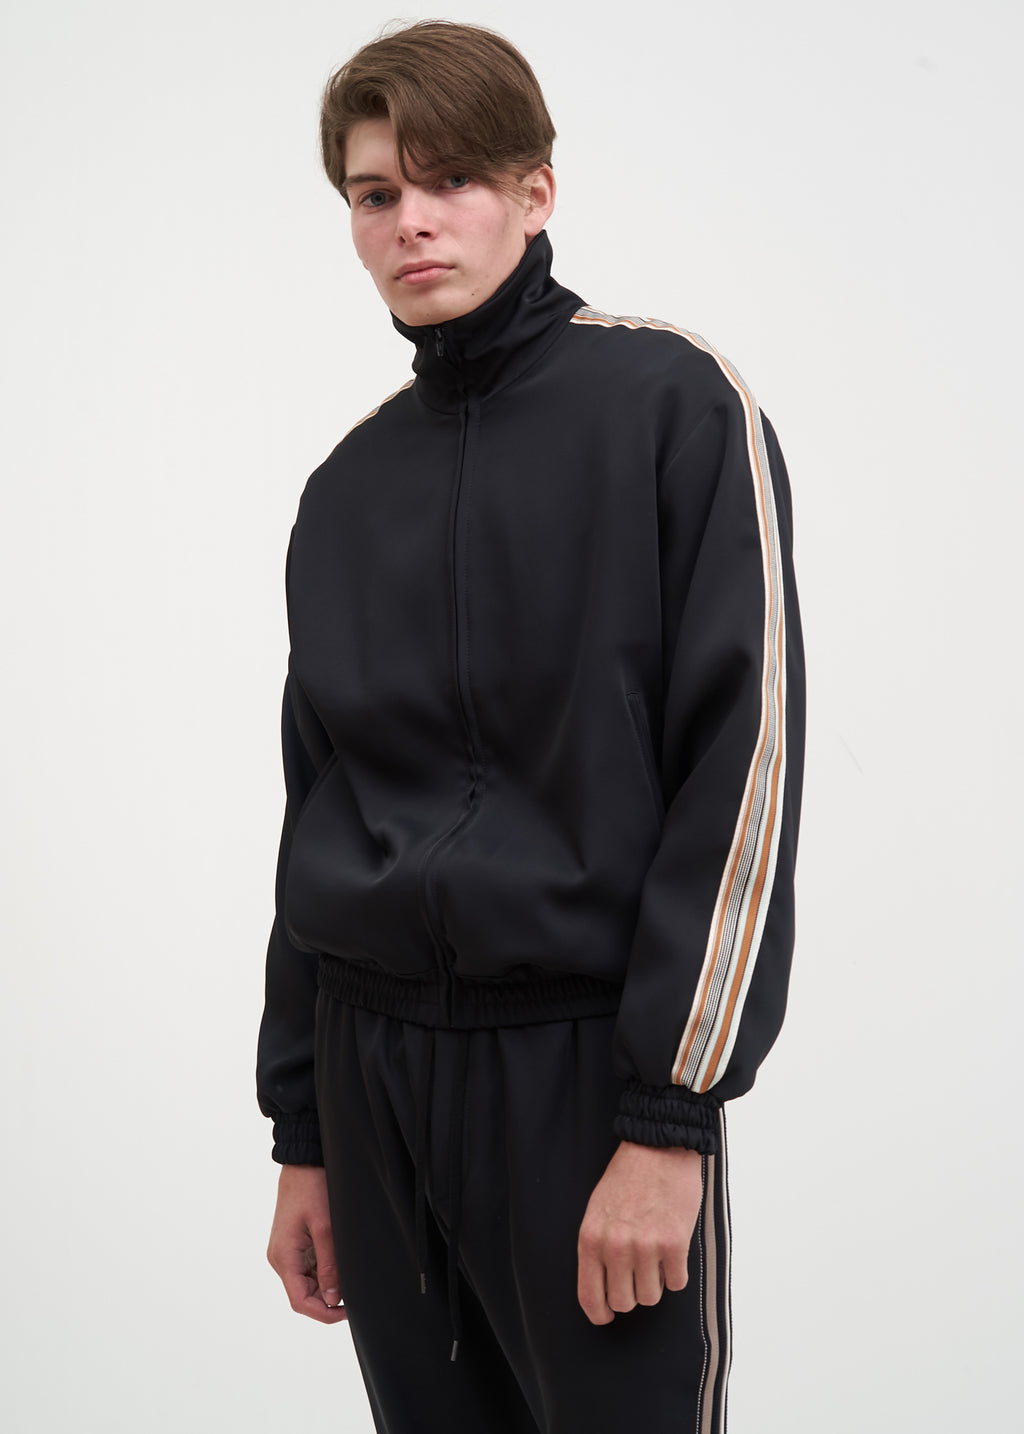 Black Bret Striped Track Jacket